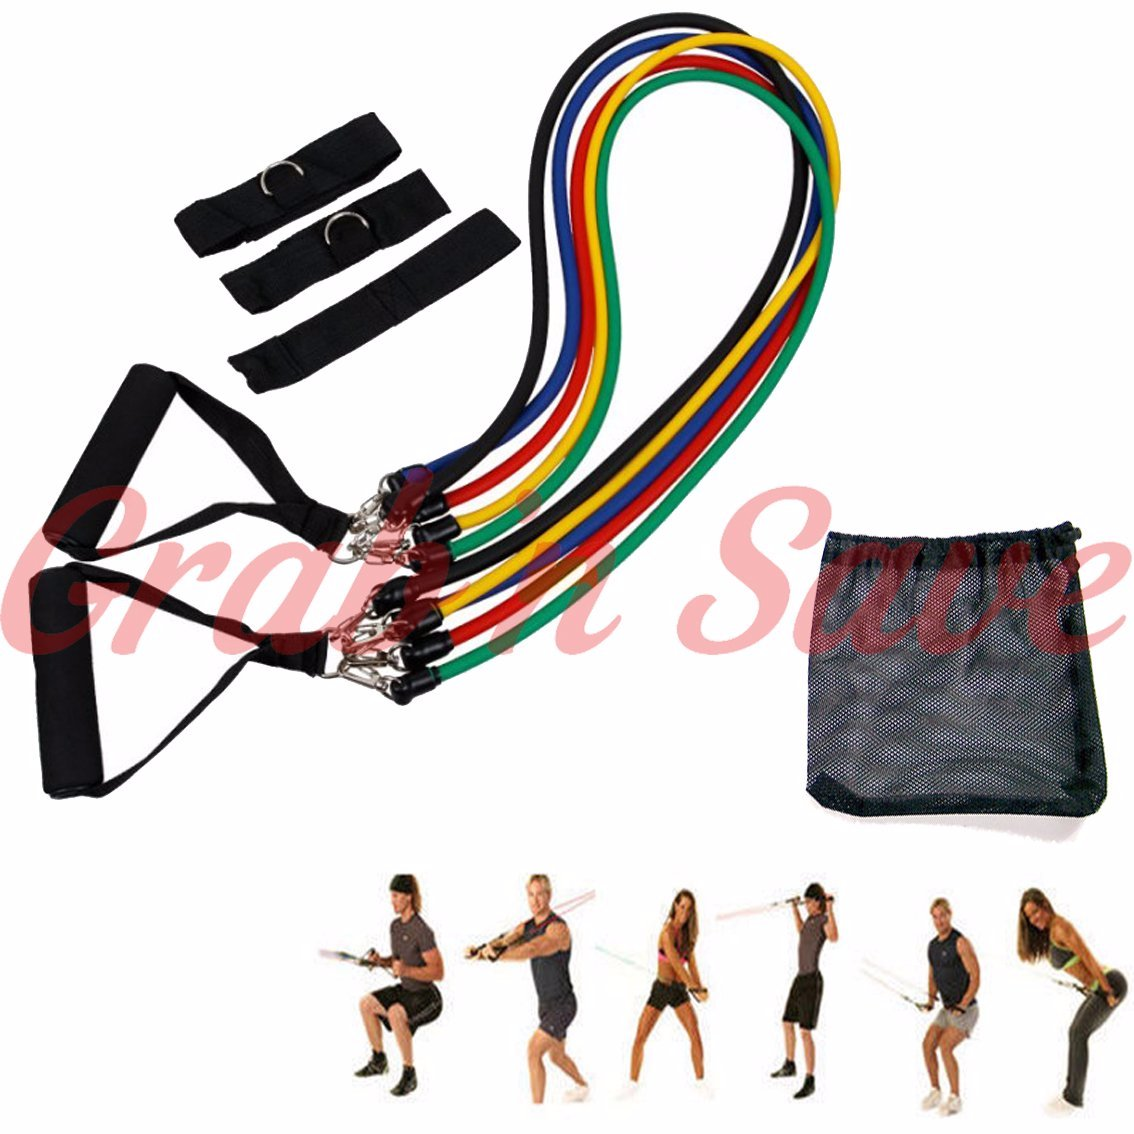 Resistance Bands, Resistance Bands Exercises, Resistance Bands Workouts